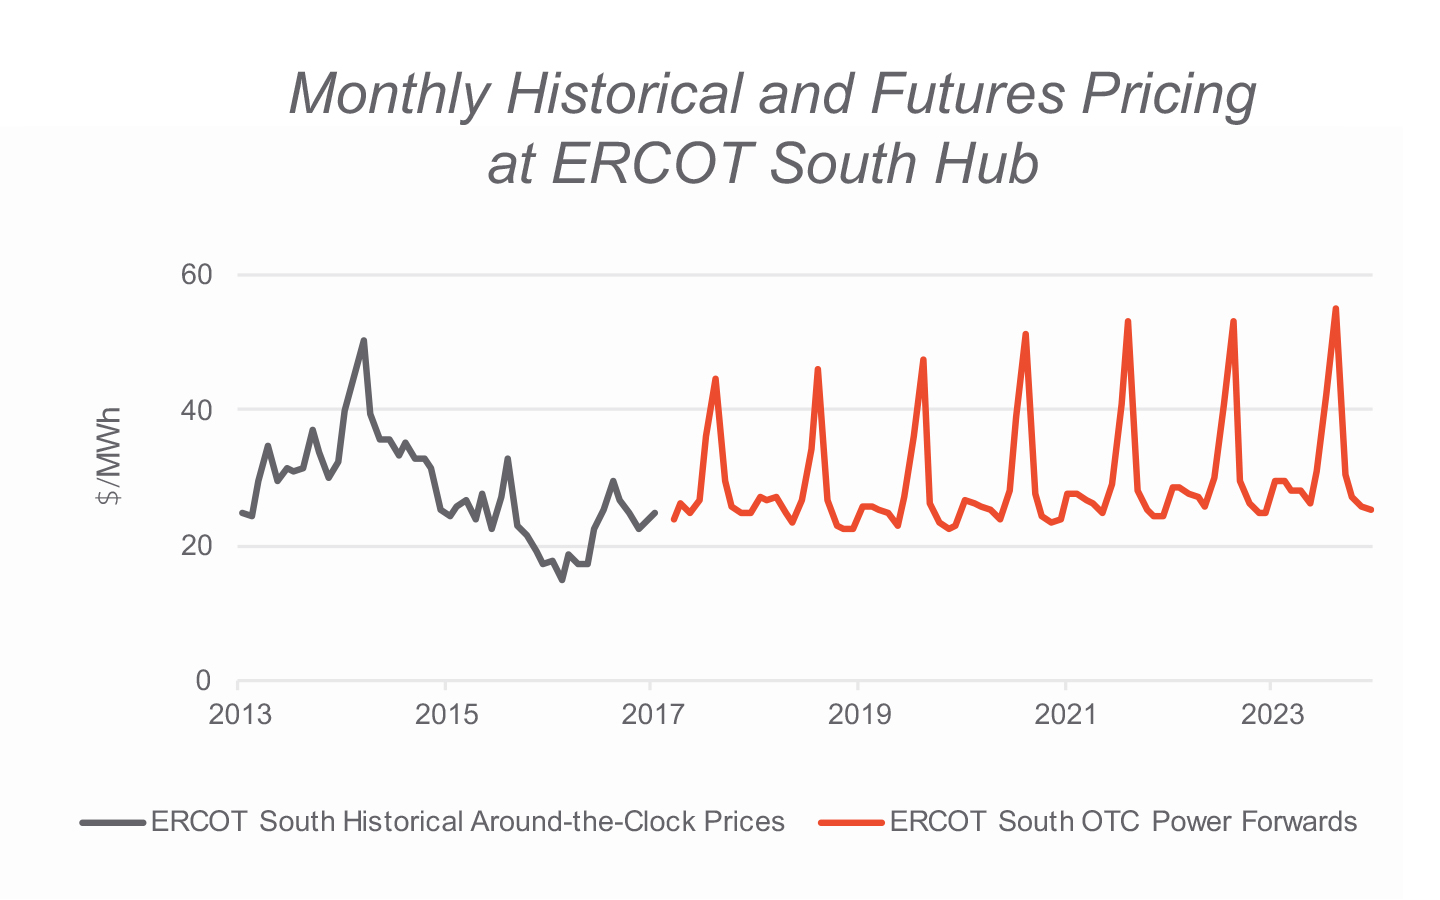 Monthly Historical and Futures Pricing at ERCOT South Hub